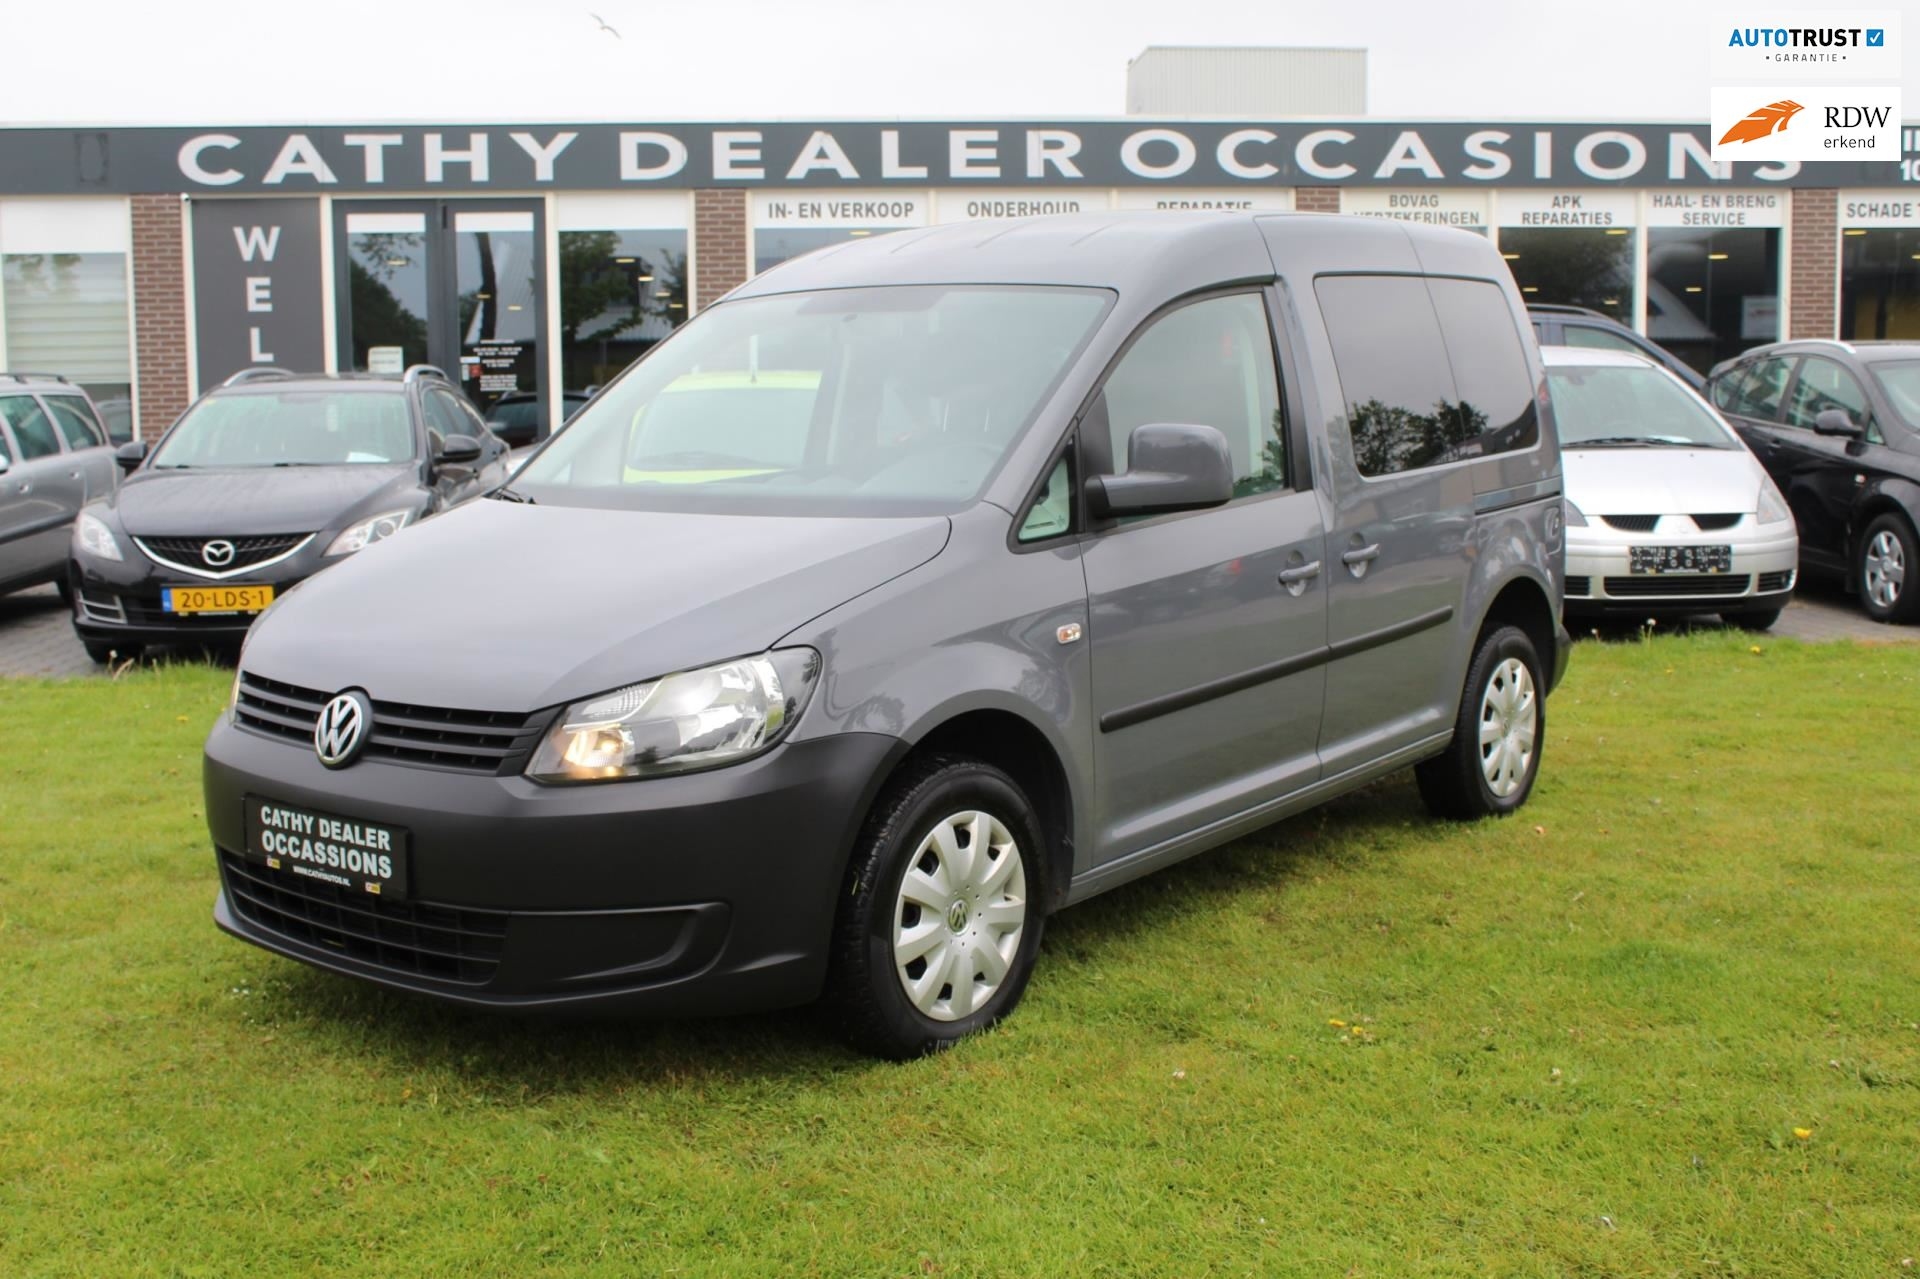 Volkswagen Caddy occasion - Cathy Dealer Occasions